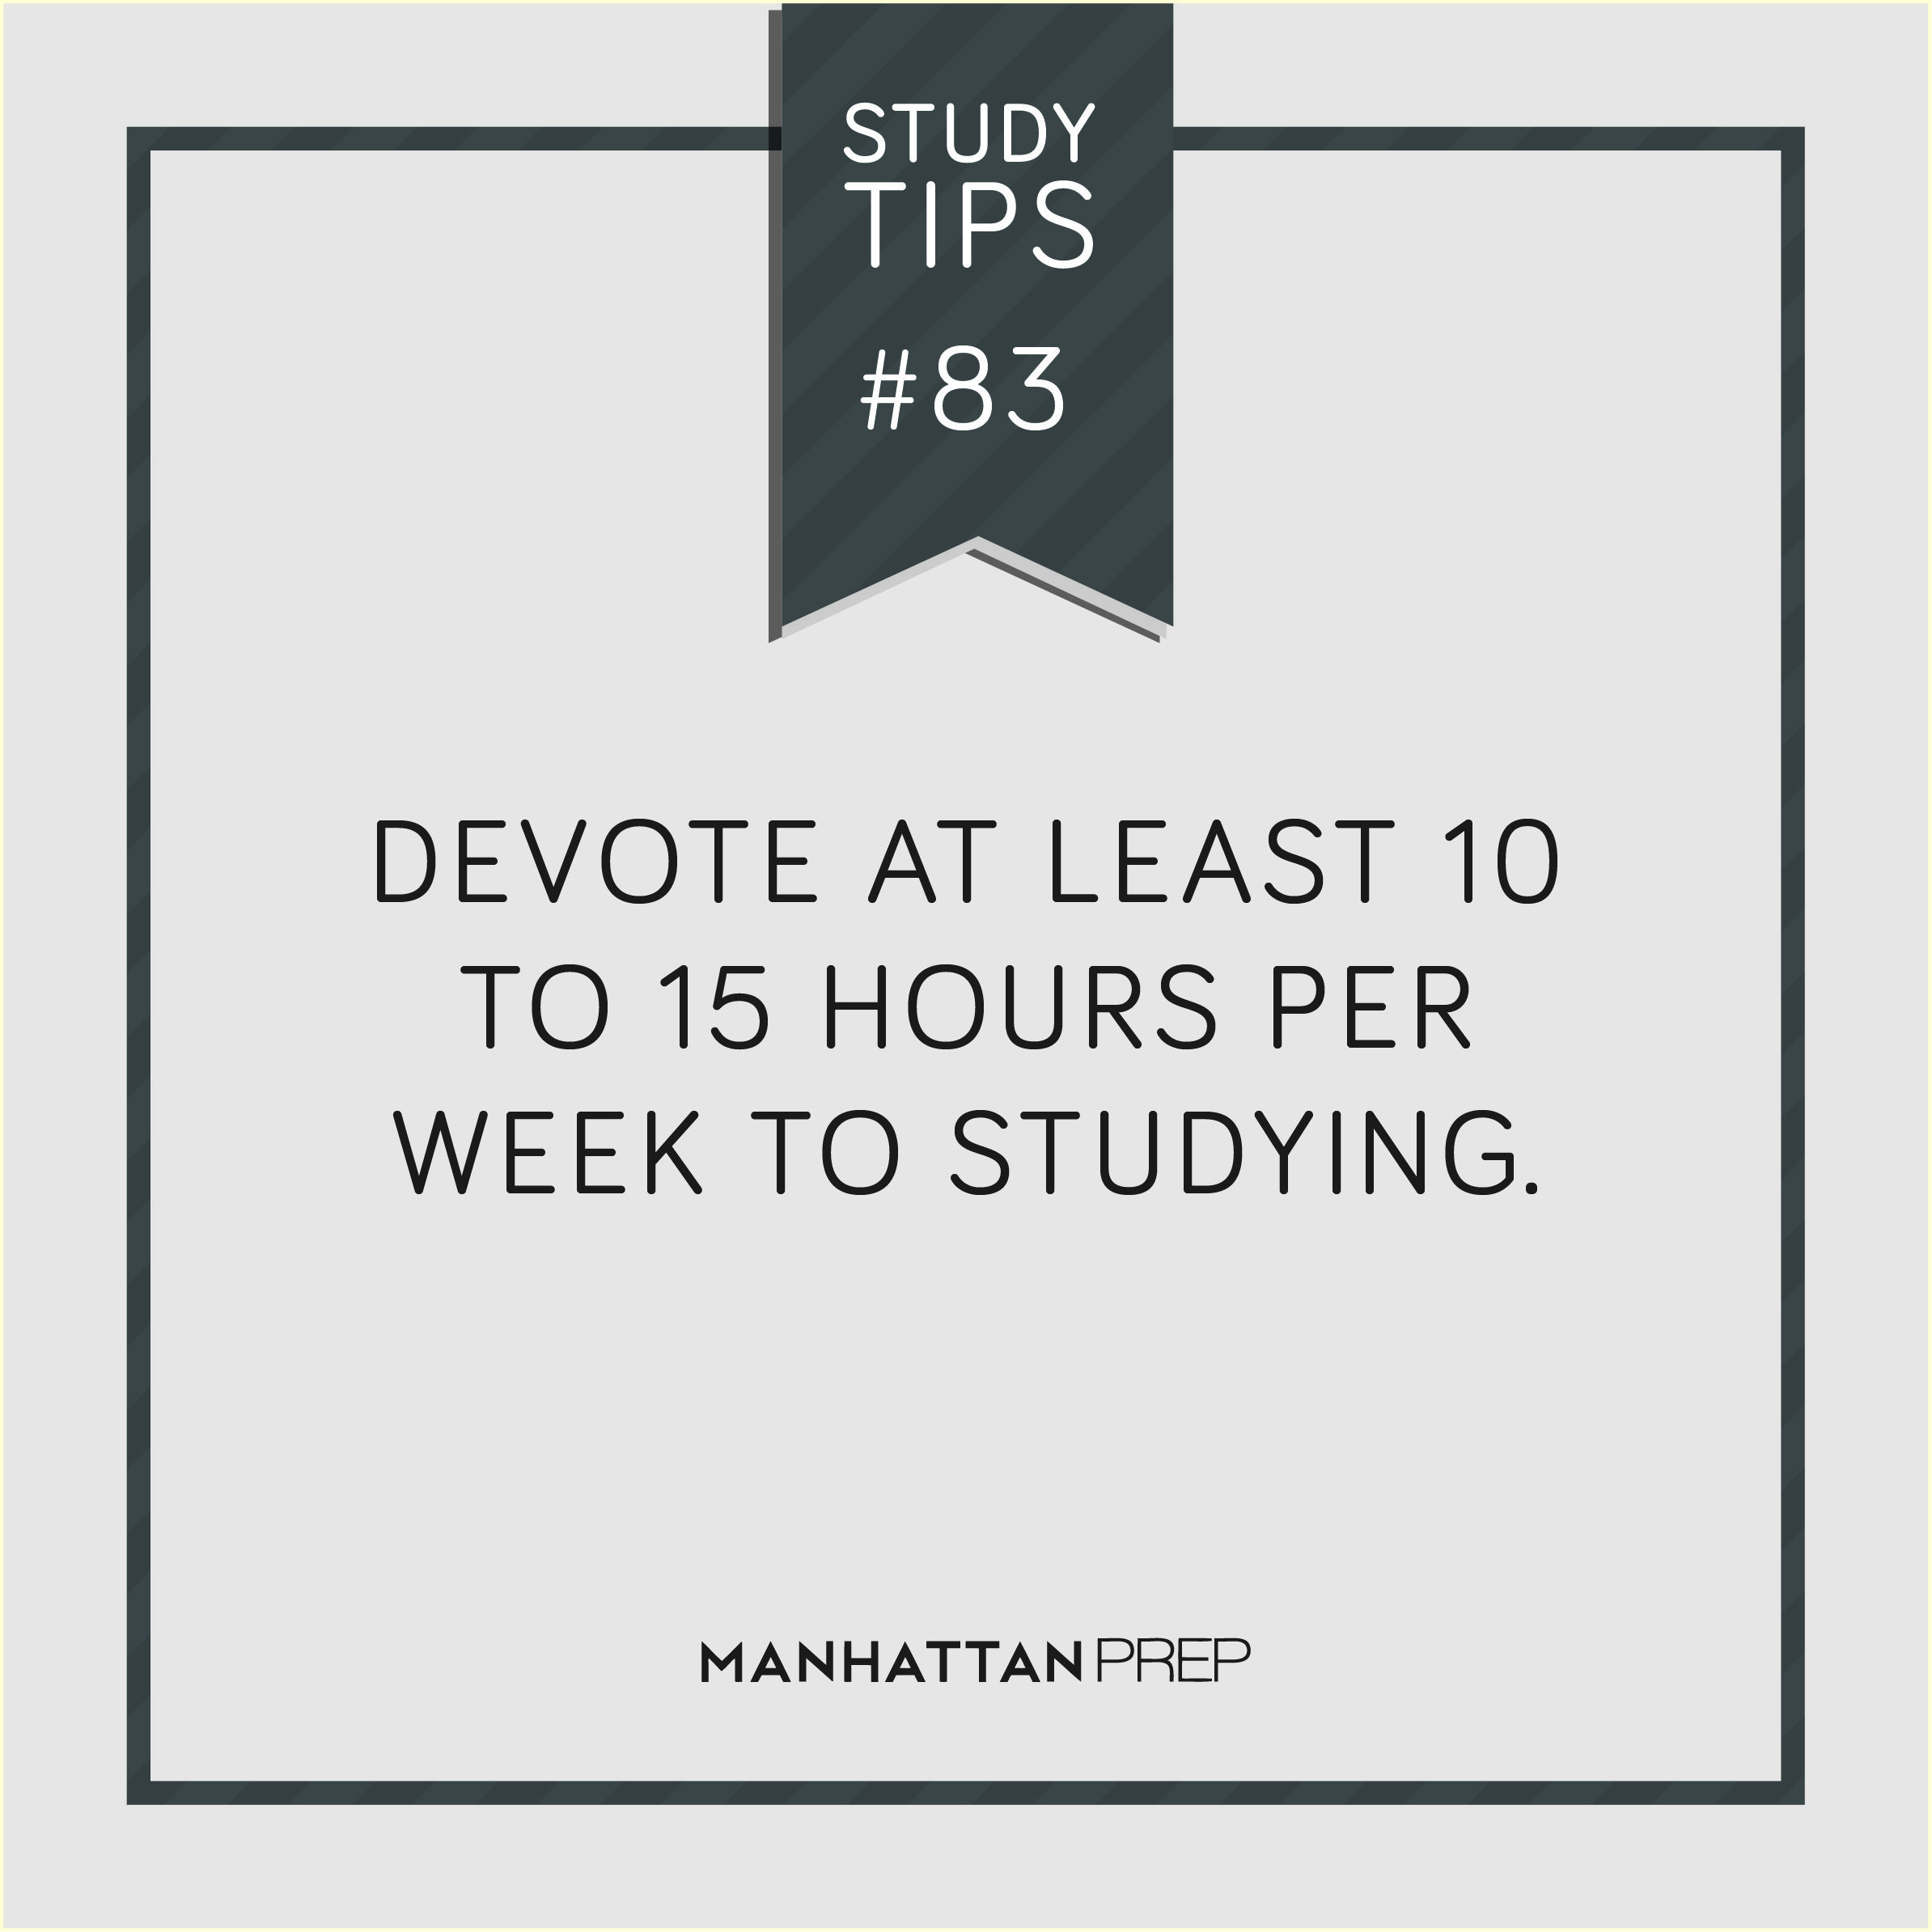 How did you motivate yourself to study for the GMAT? - Quora